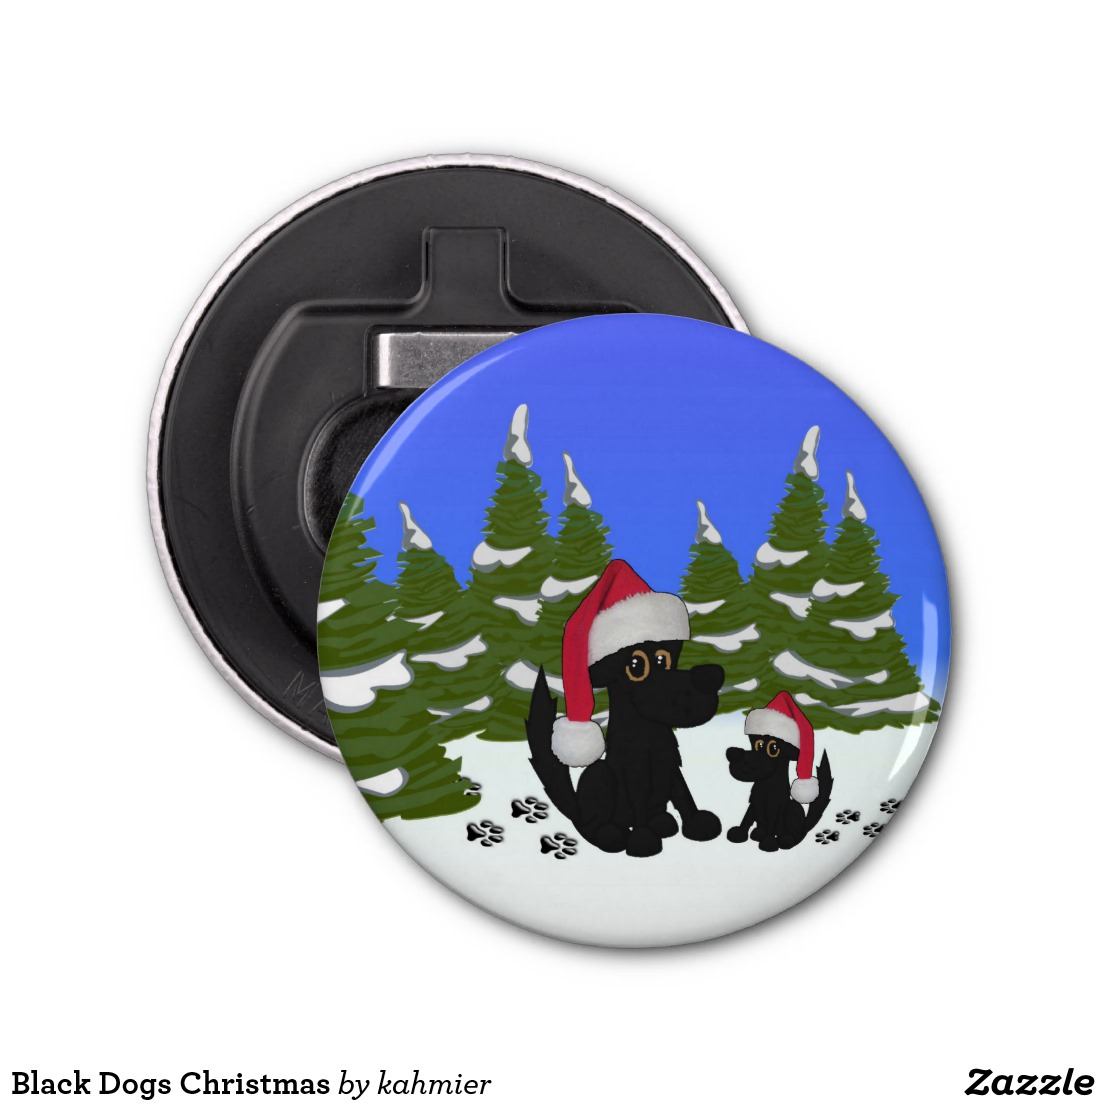 Black Dogs Christmas Bottle Opener